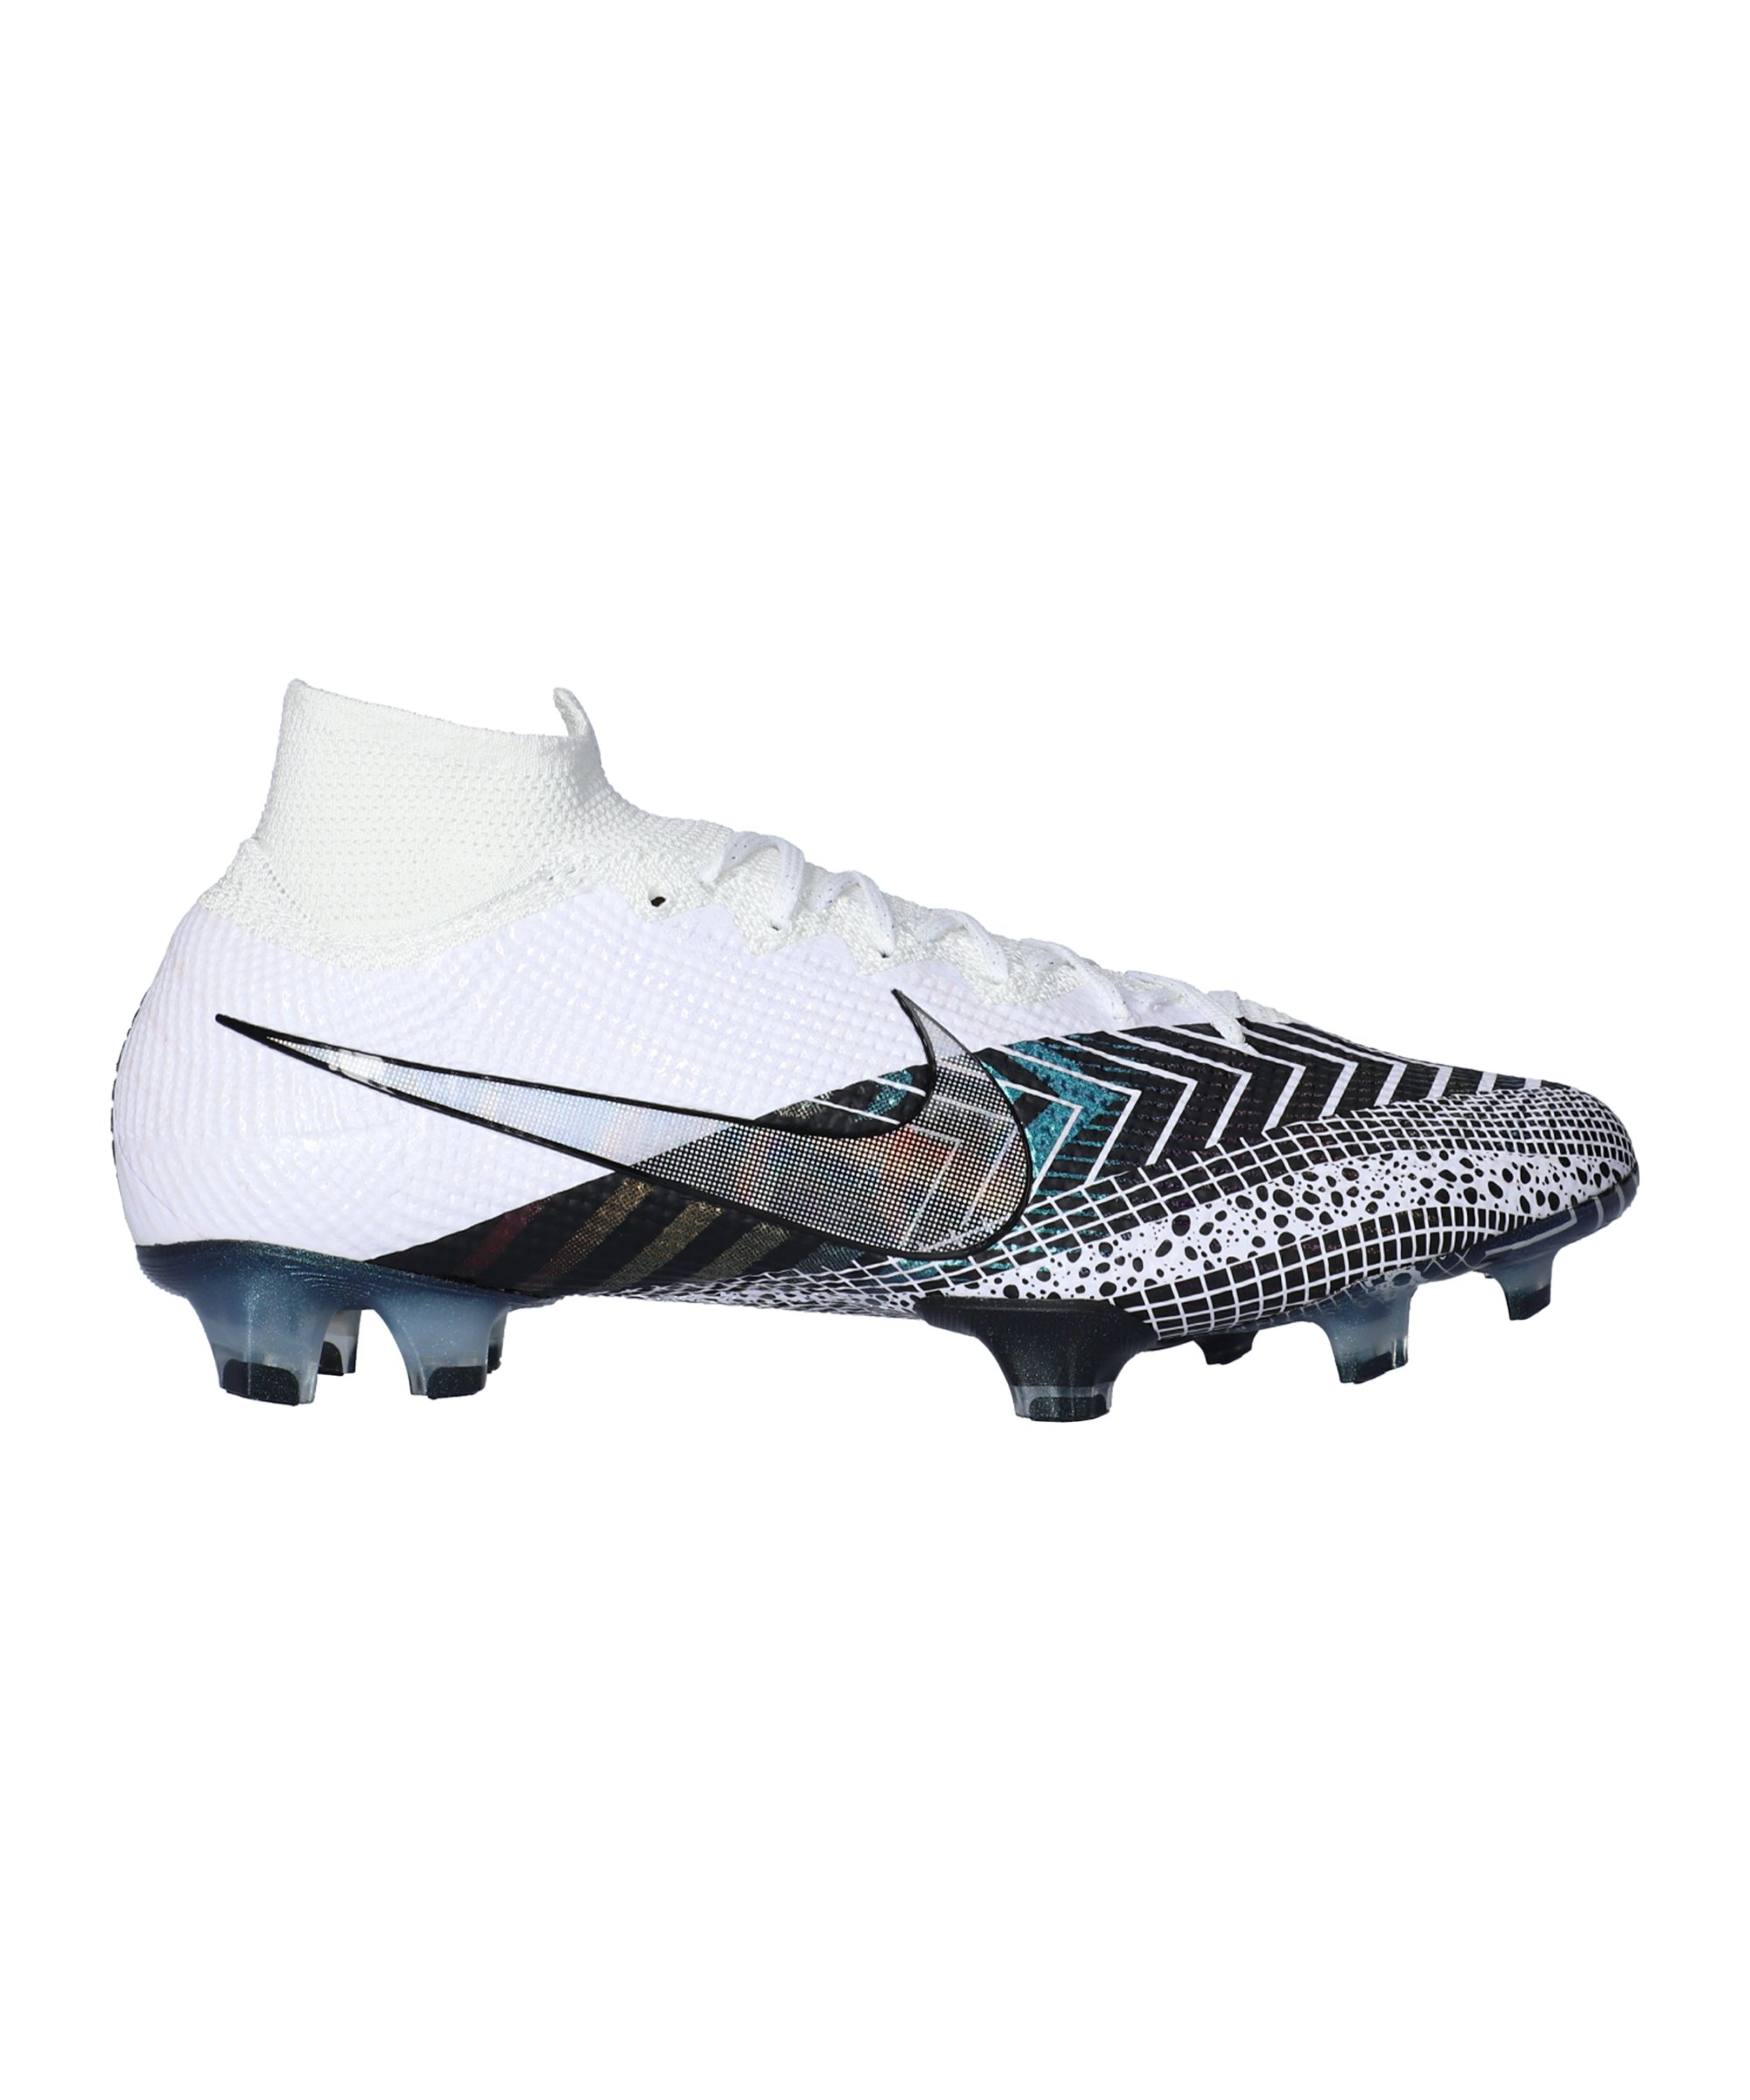 Nike Mercurial Superfly VII Dream Speed 3 Elite FG Weiss F110 - weiss